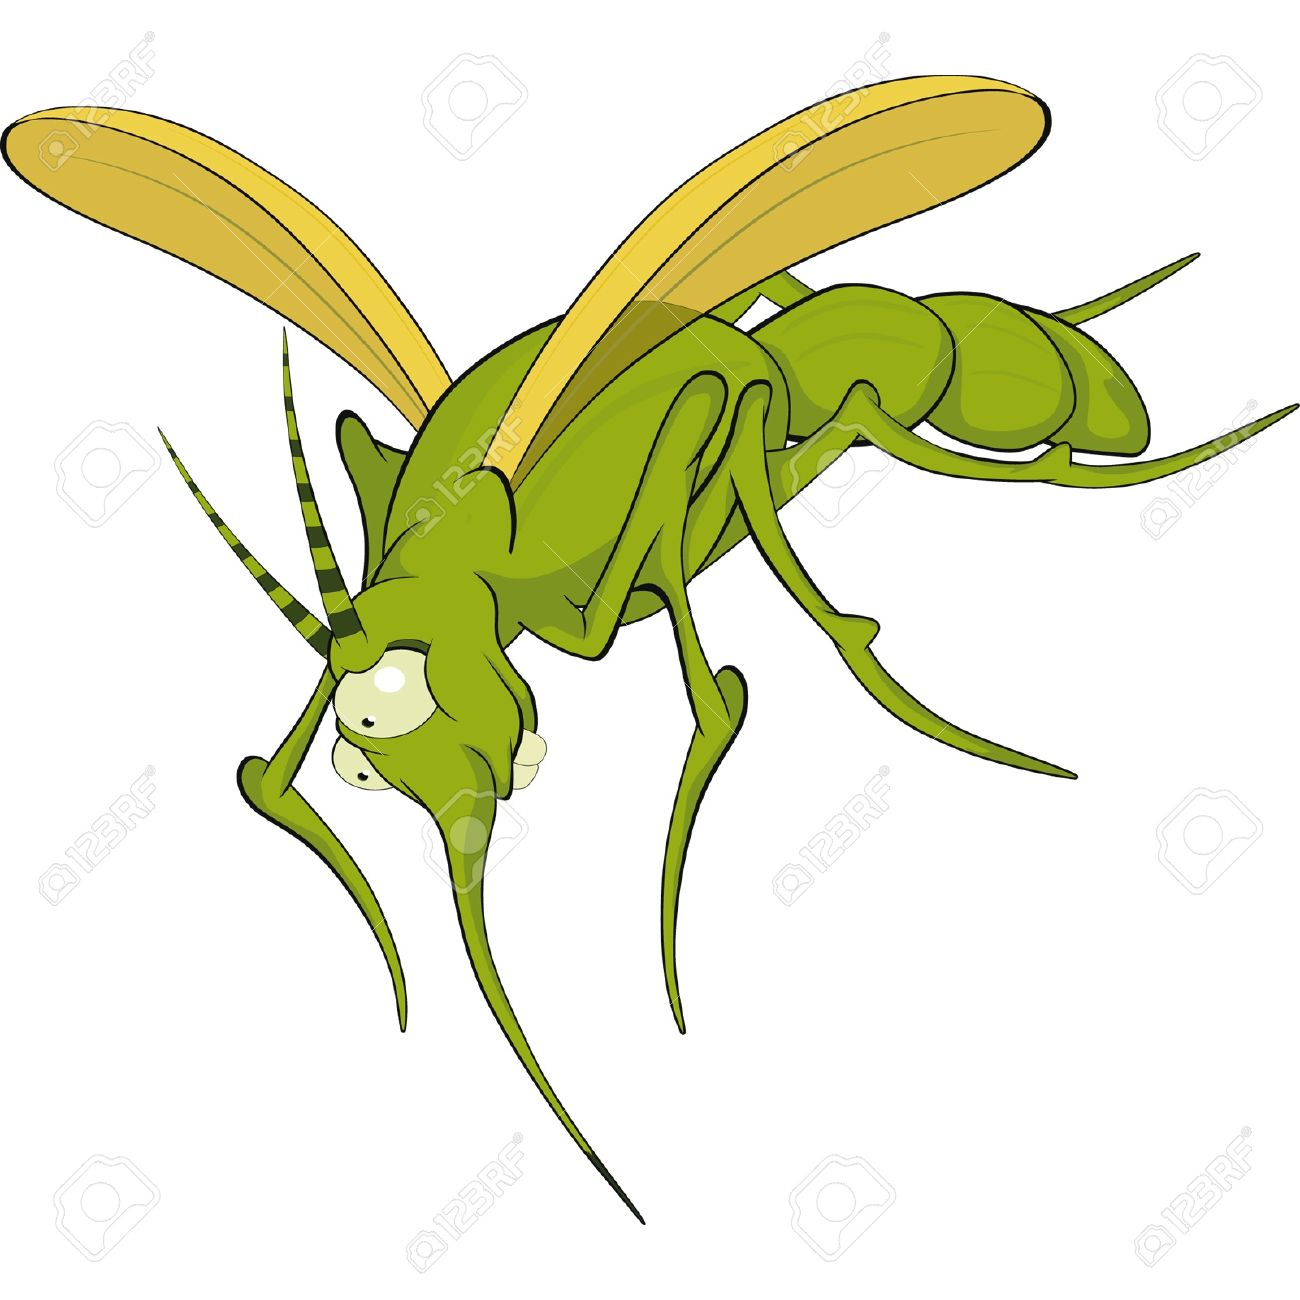 mosquito cartoon stock photos royalty free mosquito cartoon